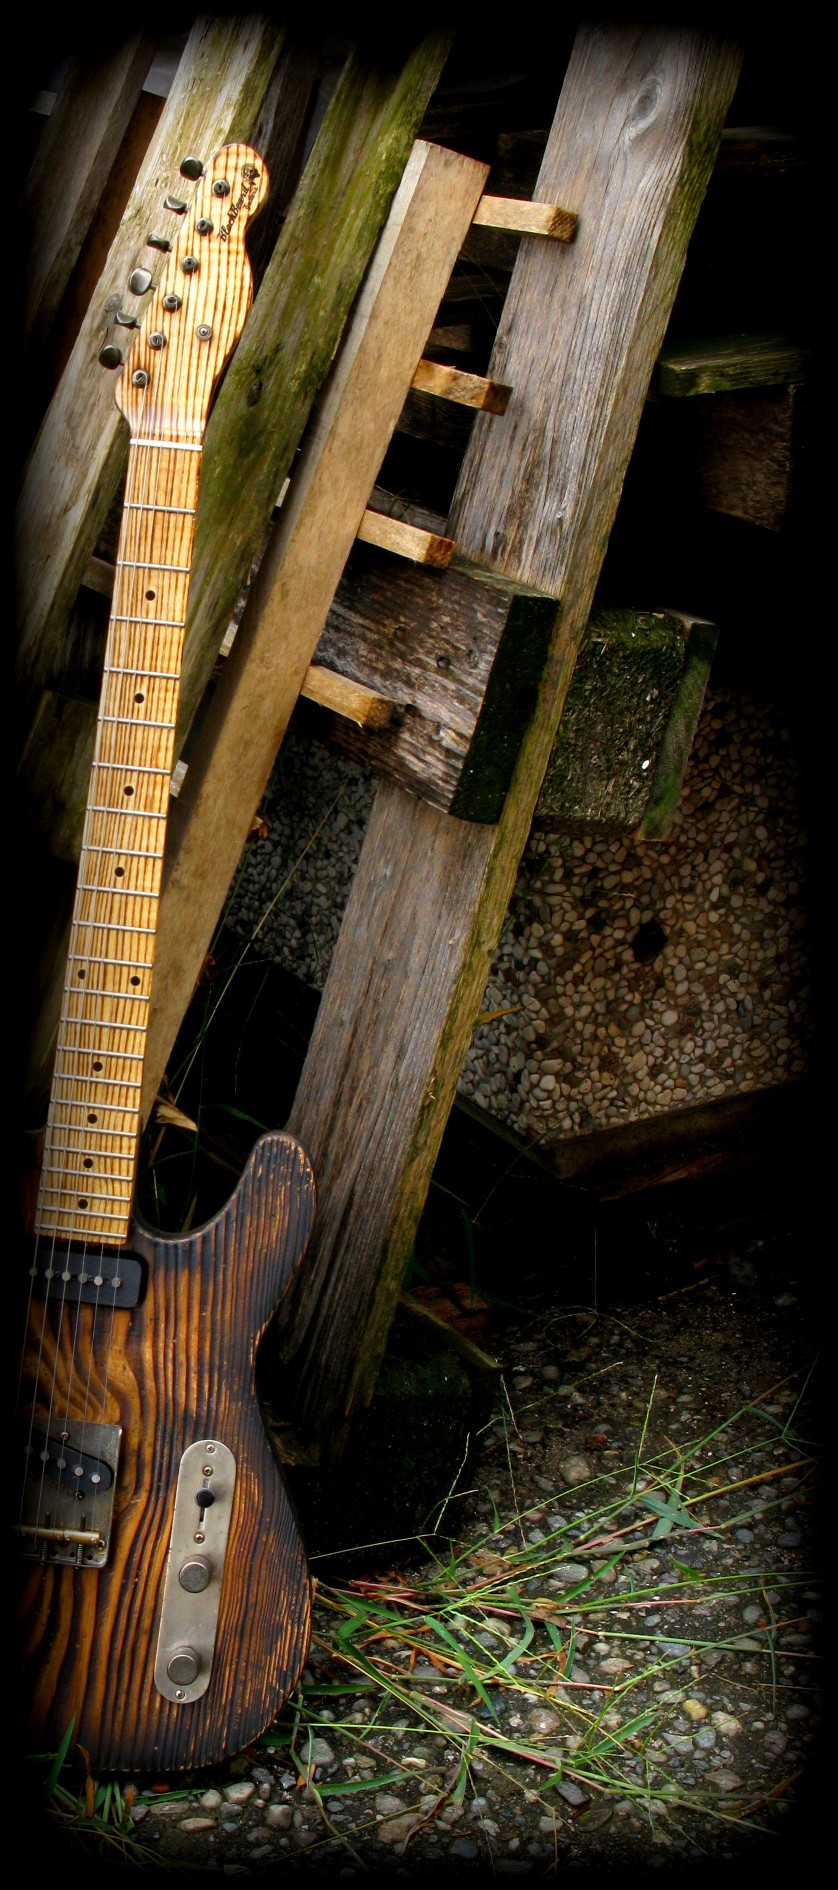 Telecaster in pitch pine e manico in frassino